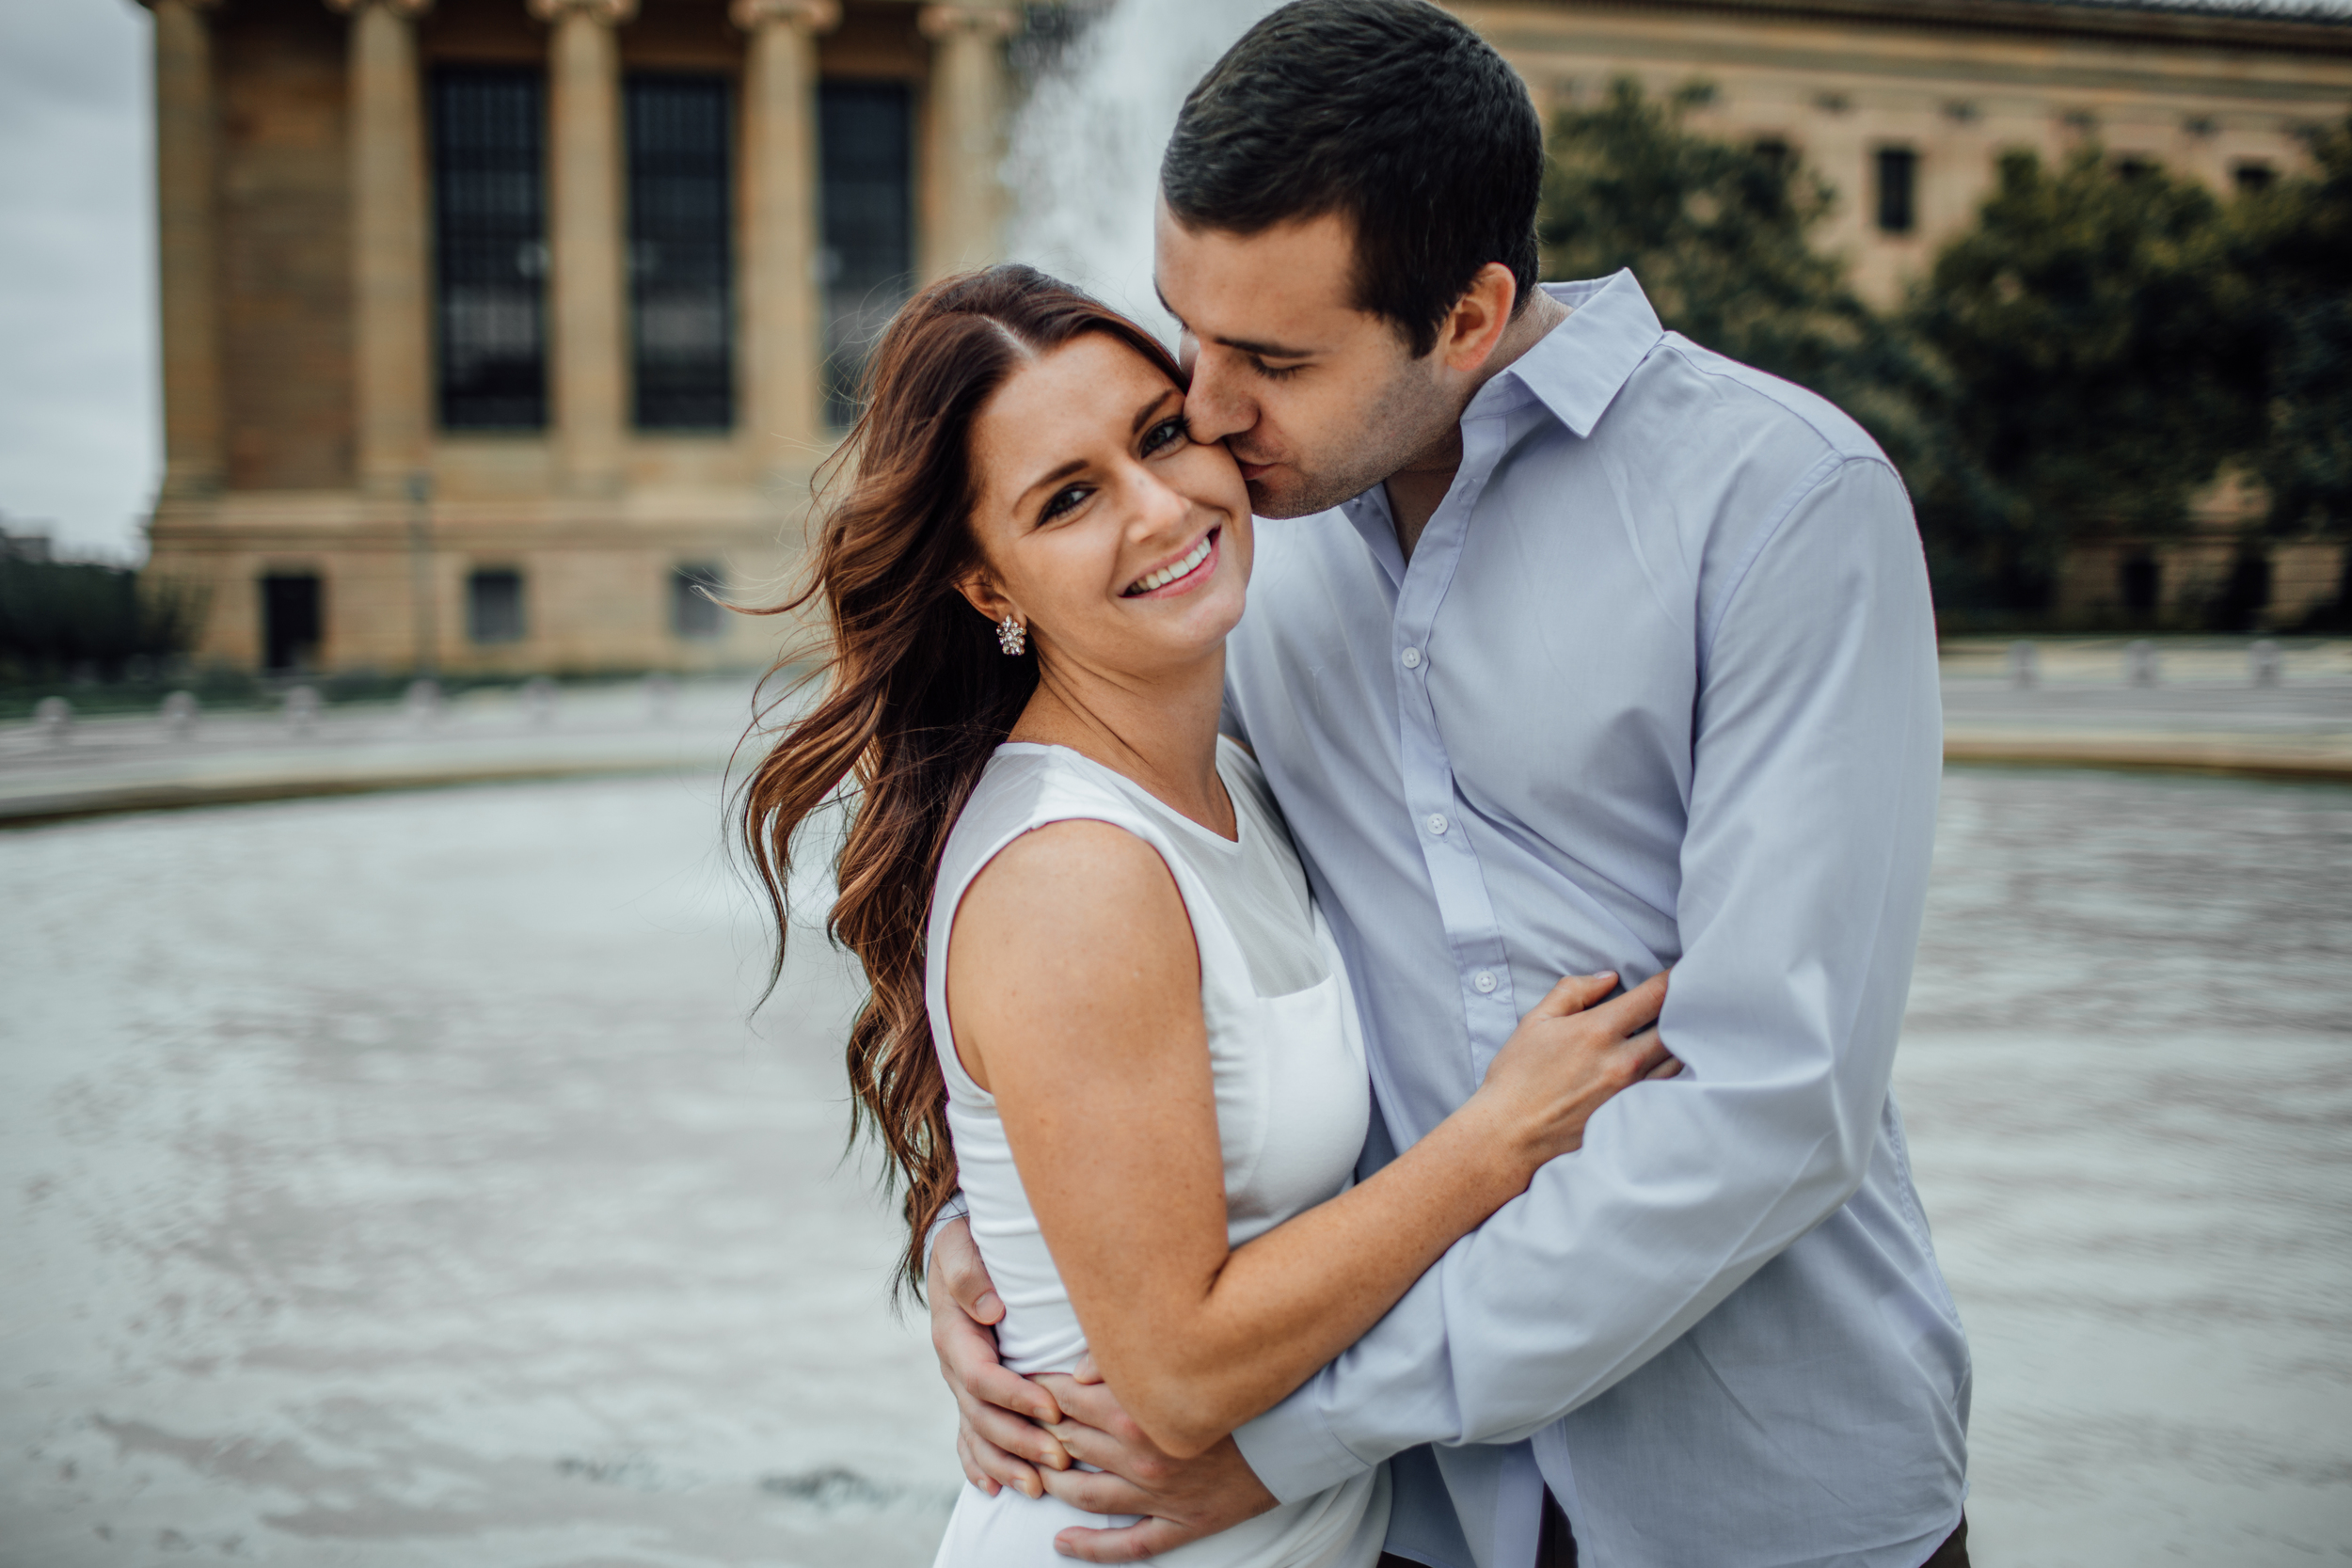 BRITTANYandKEVIN-Engagement2015 (84 of 115).jpg